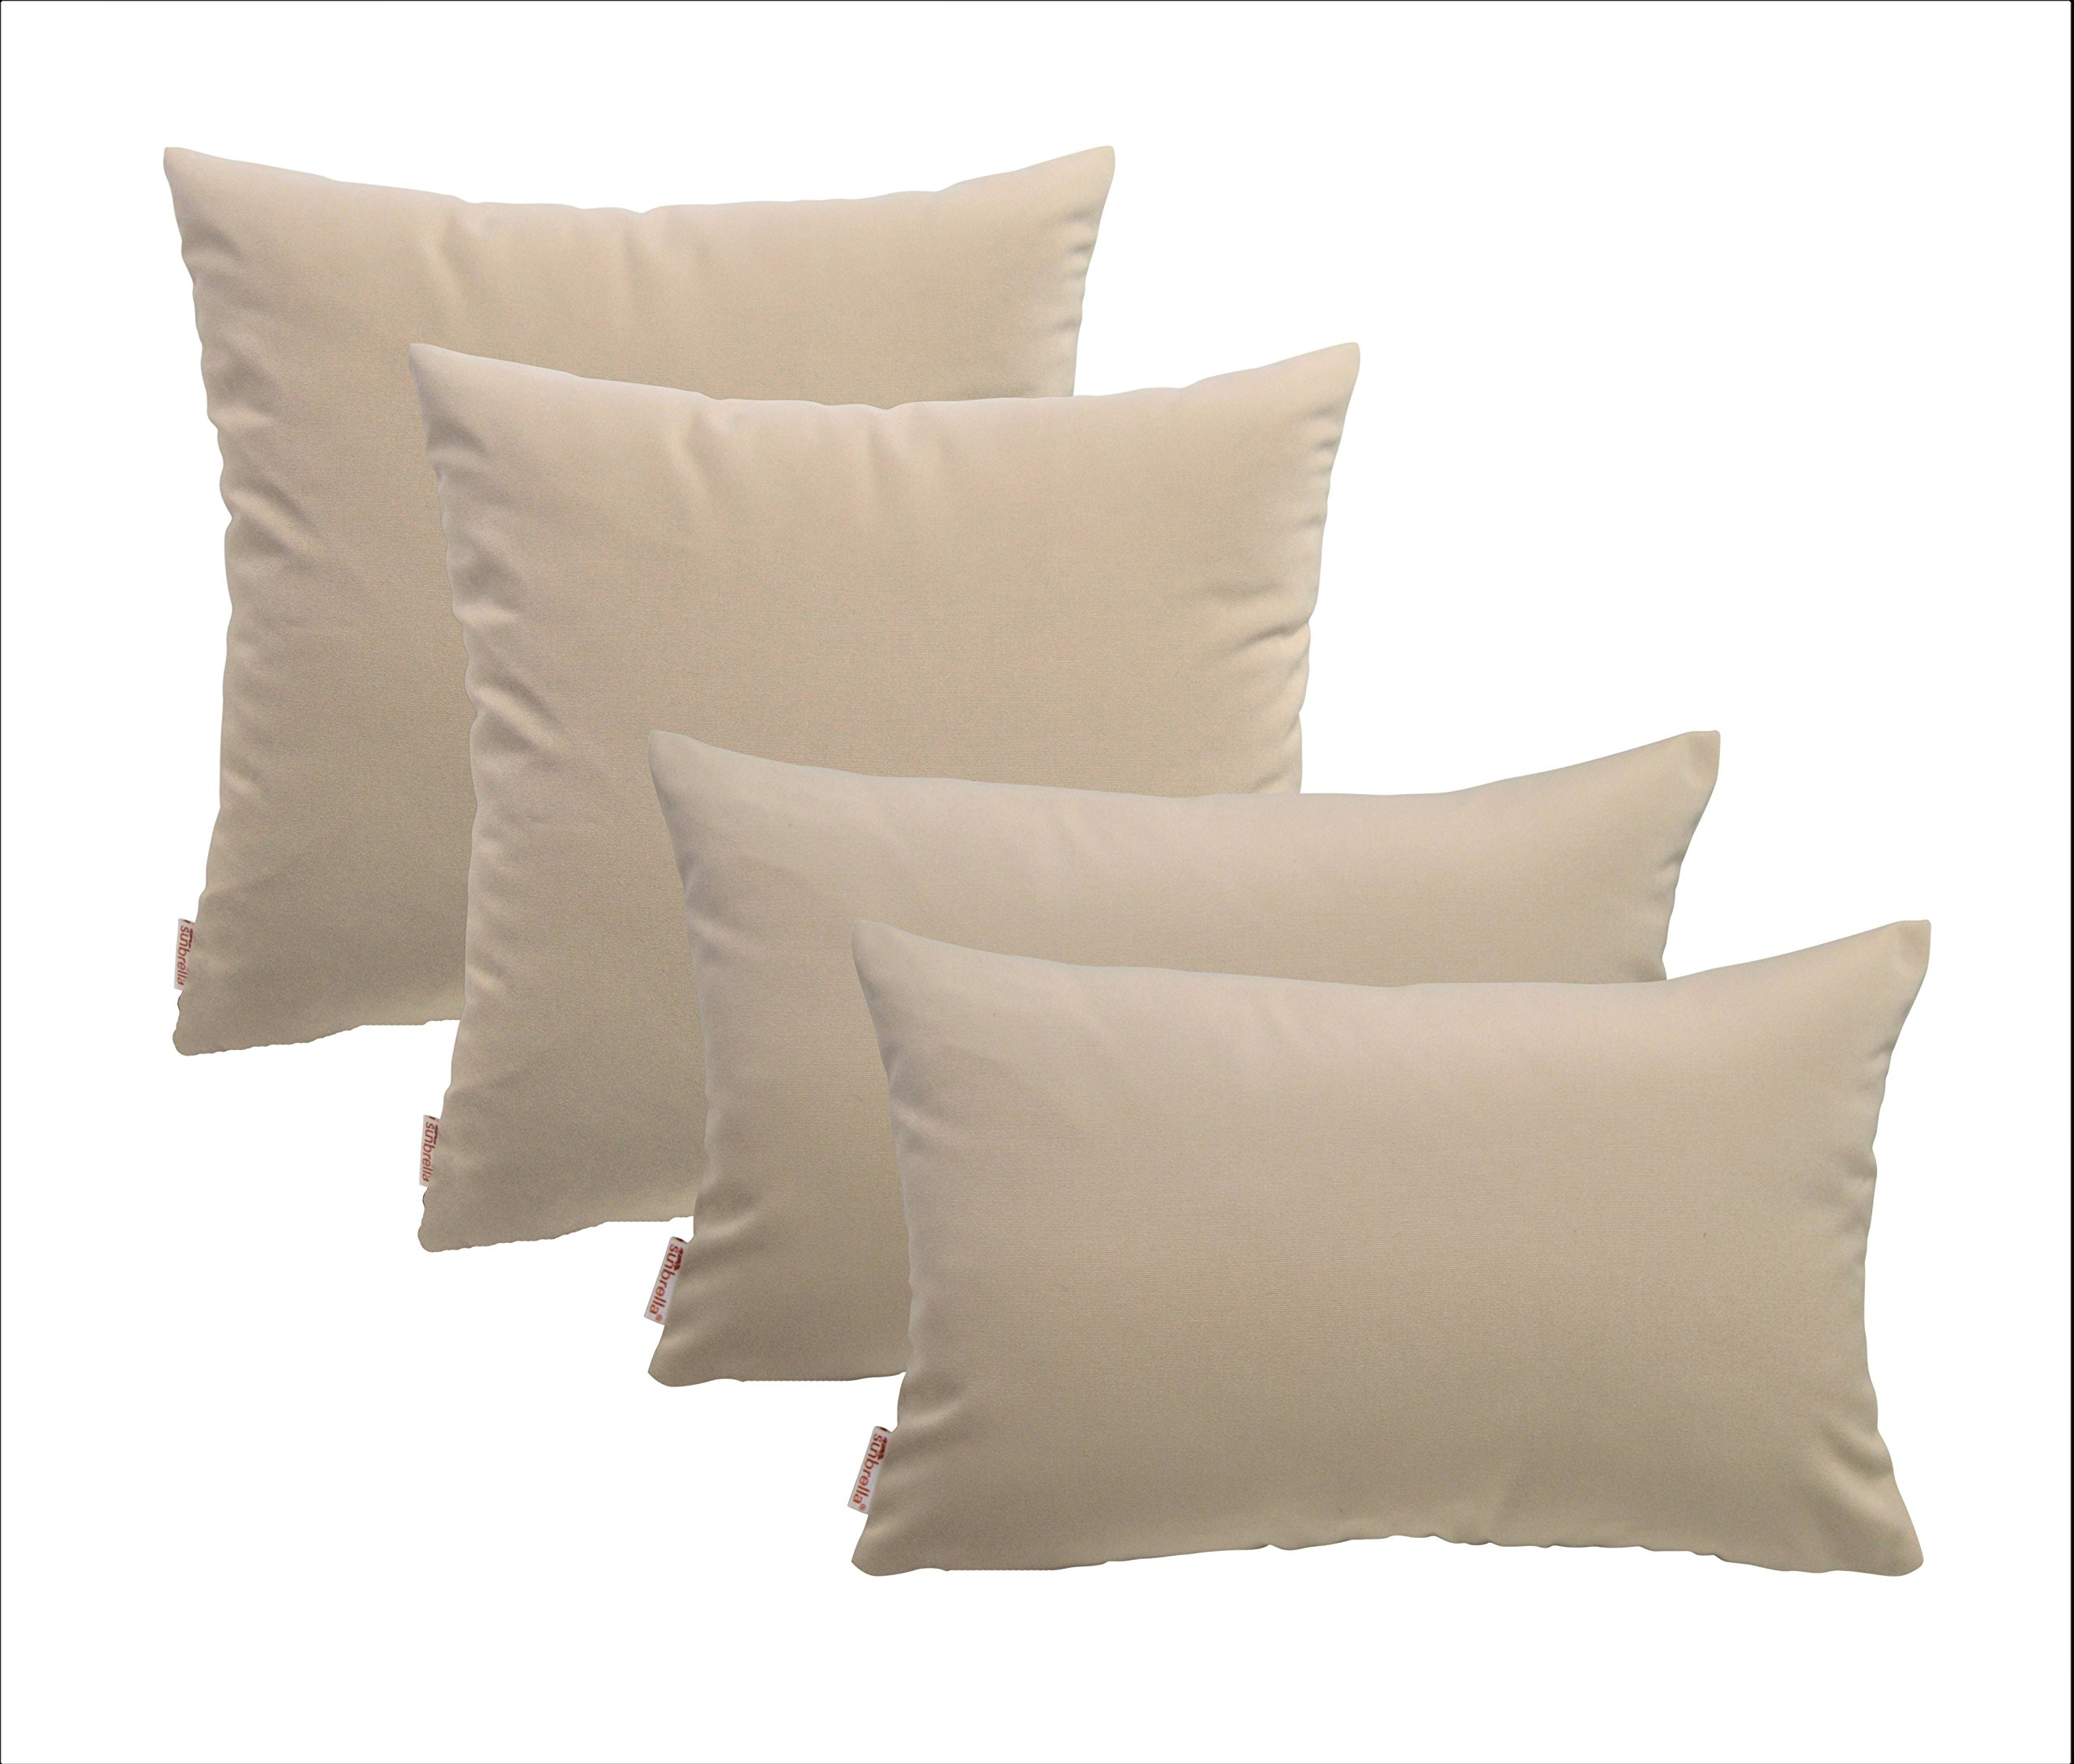 RSH Décor Set of 4 Indoor Outdoor Pillows- 20'' x 20'' + 12'' x 20'' Square & Rectangular/Lumbar Pillows-Sunbrella Canvas Canvas Beige/Tan